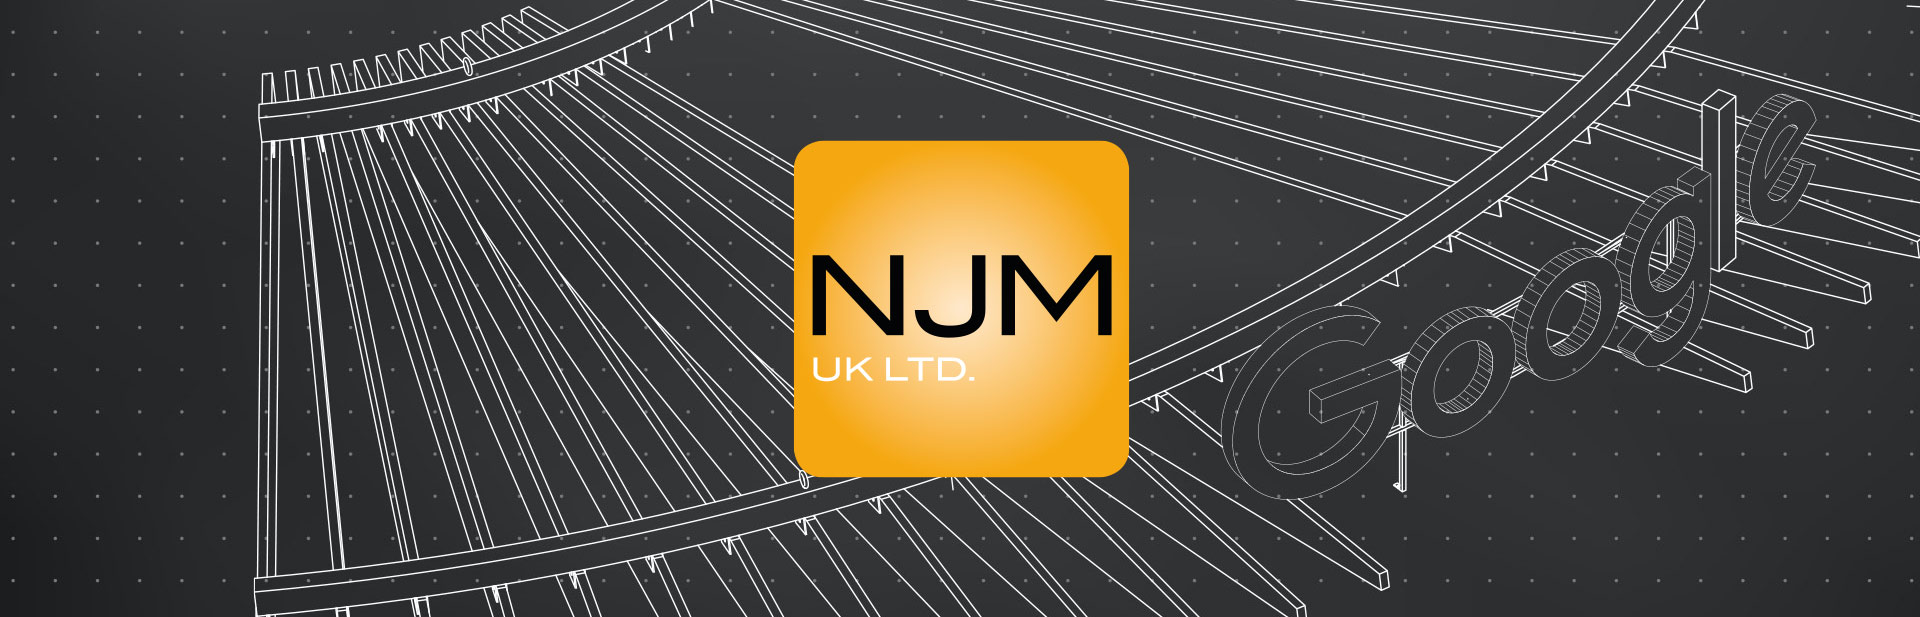 NJM website design